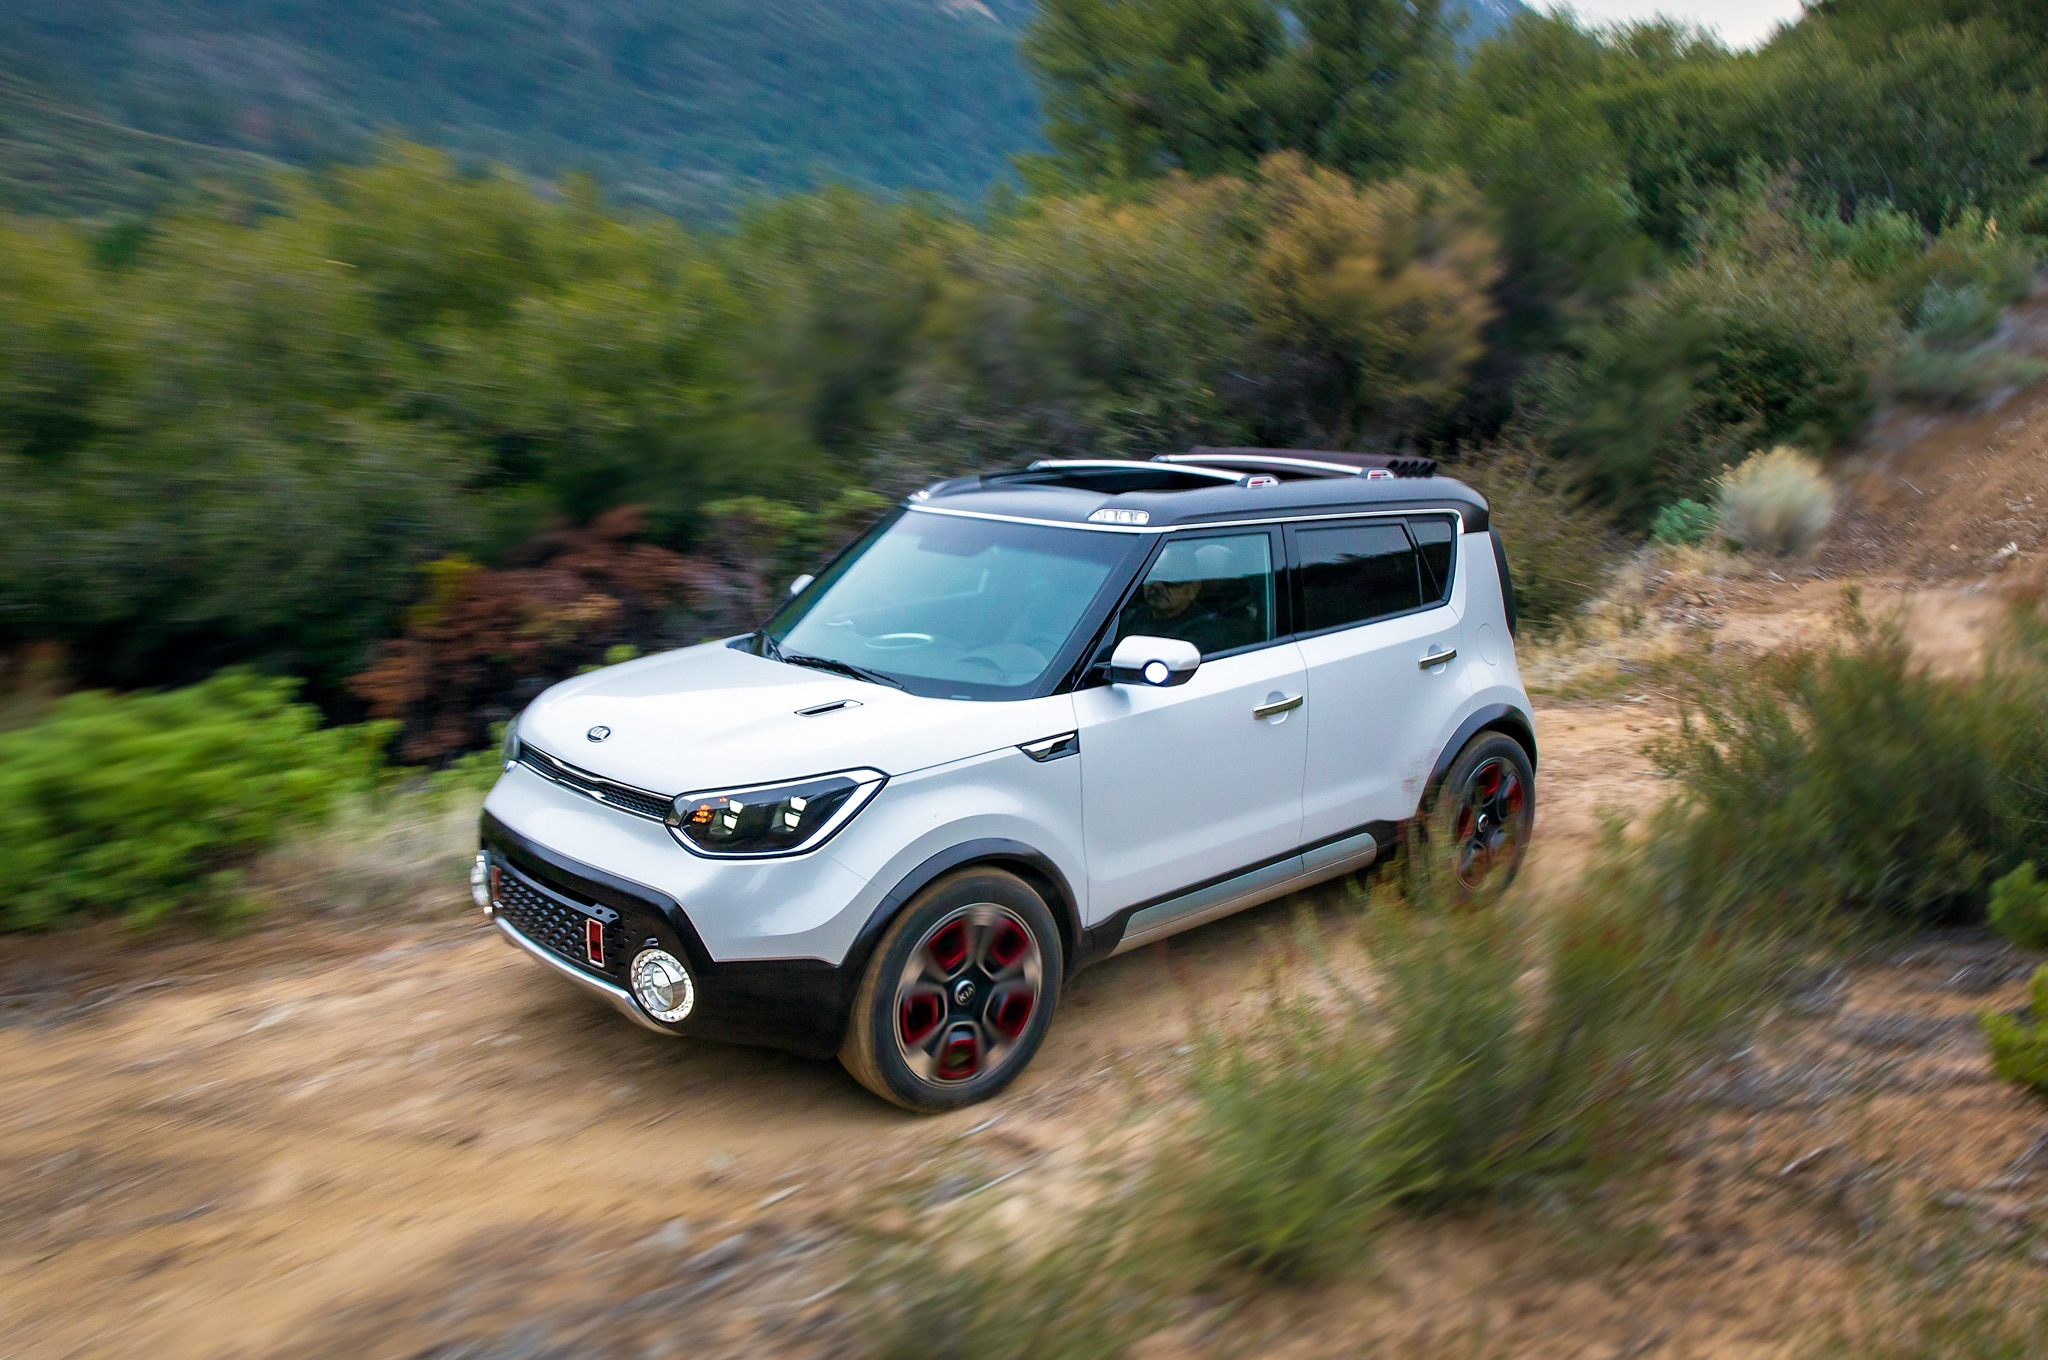 Turbocharged Kia Soul Confirmed For Winter 2016 Launch